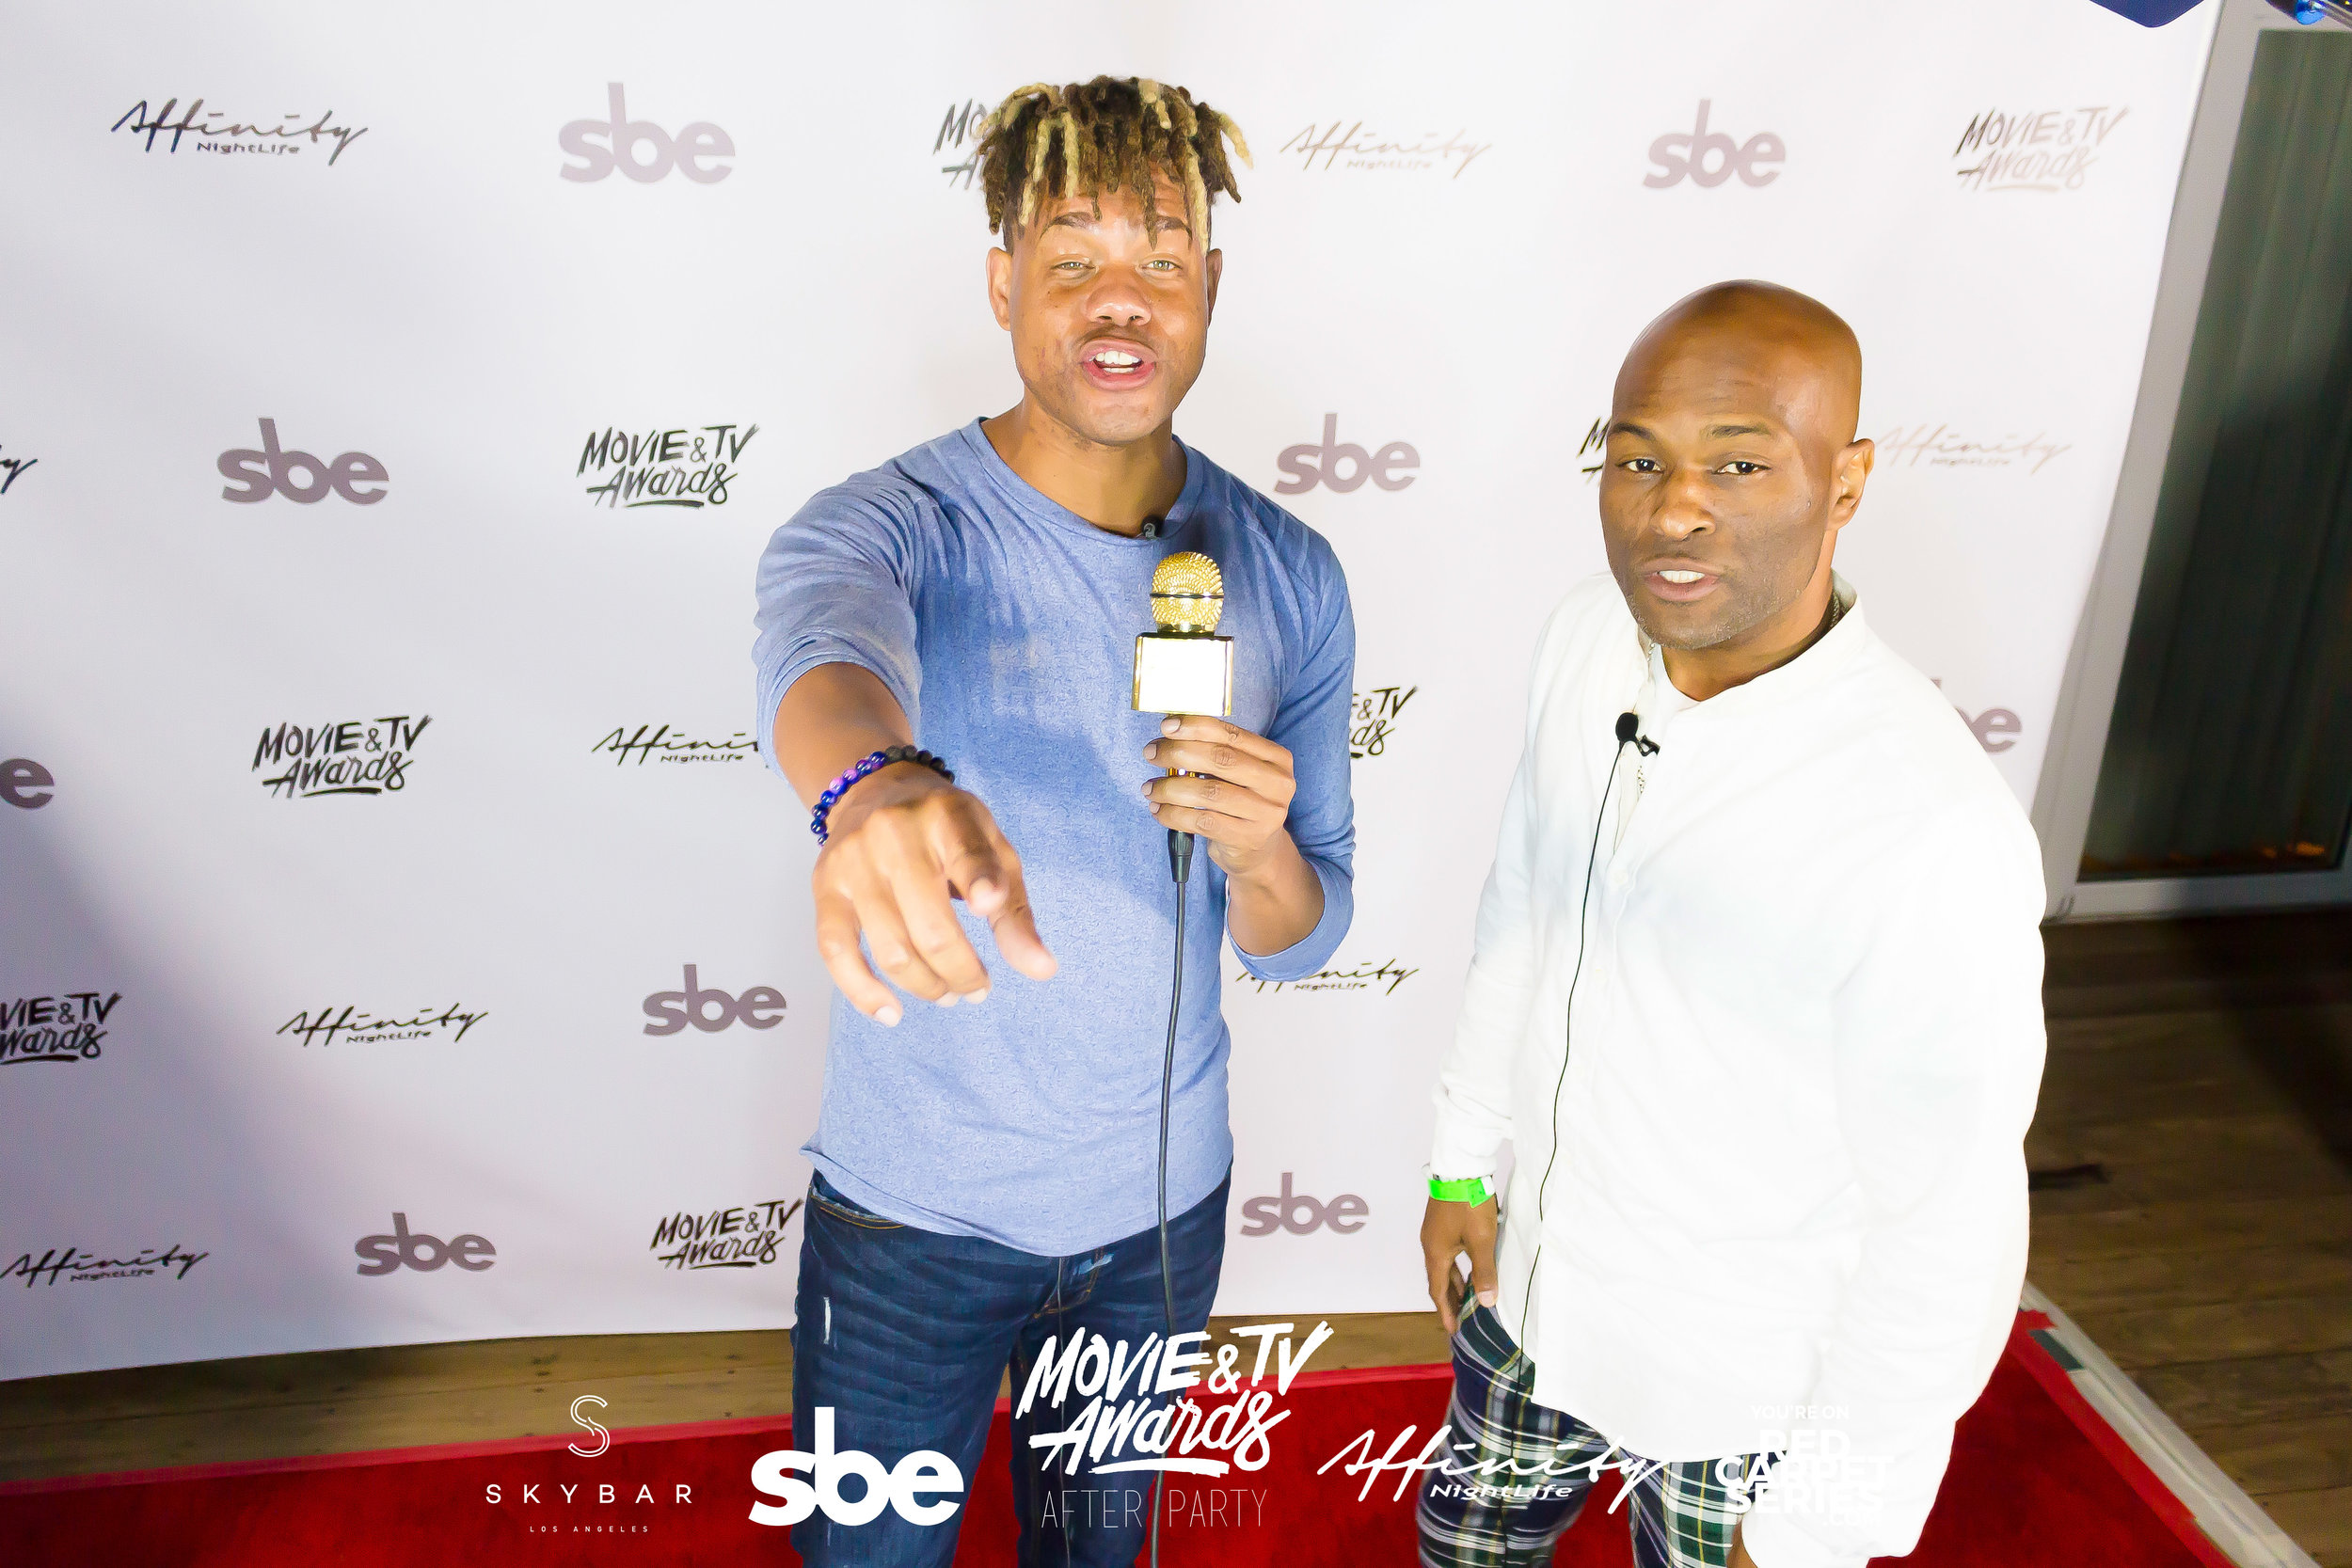 Affinity Nightlife MTV Movie & TV Awards After Party - Skybar at Mondrian - 06-15-19 - Vol. 2_14.jpg